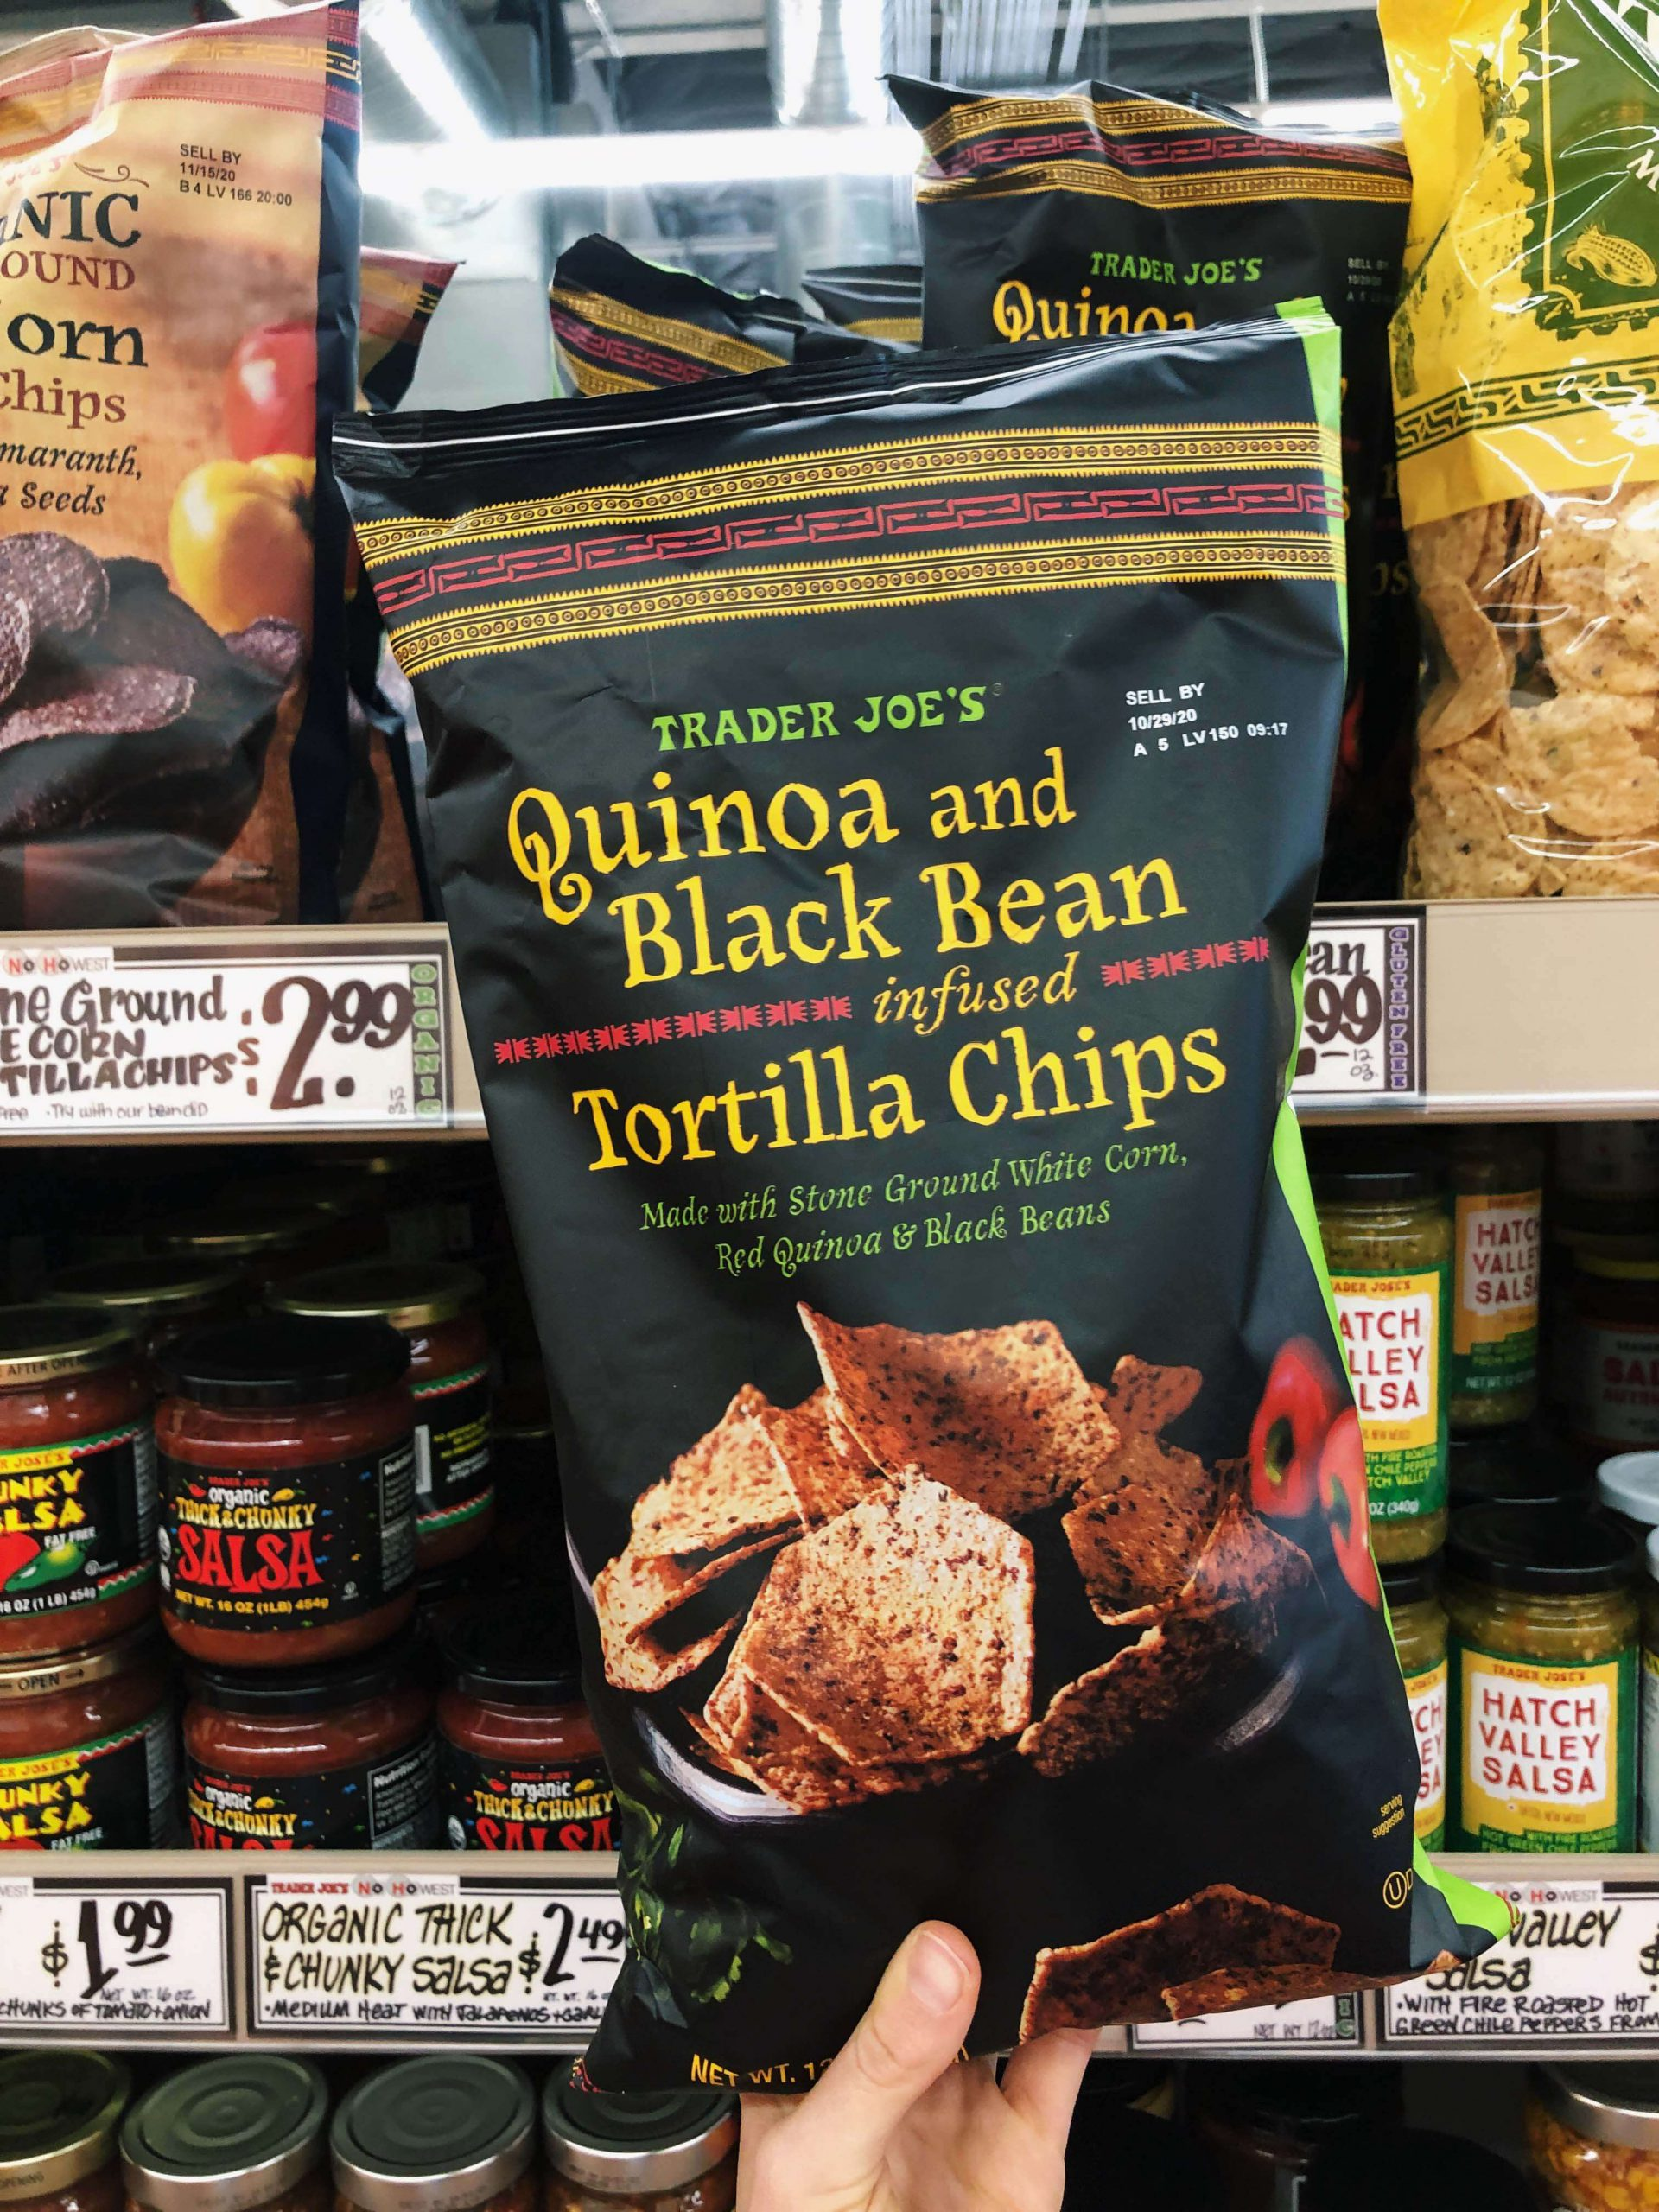 Trader Joe's Quinoa and Black Bean Infused Tortilla Chips